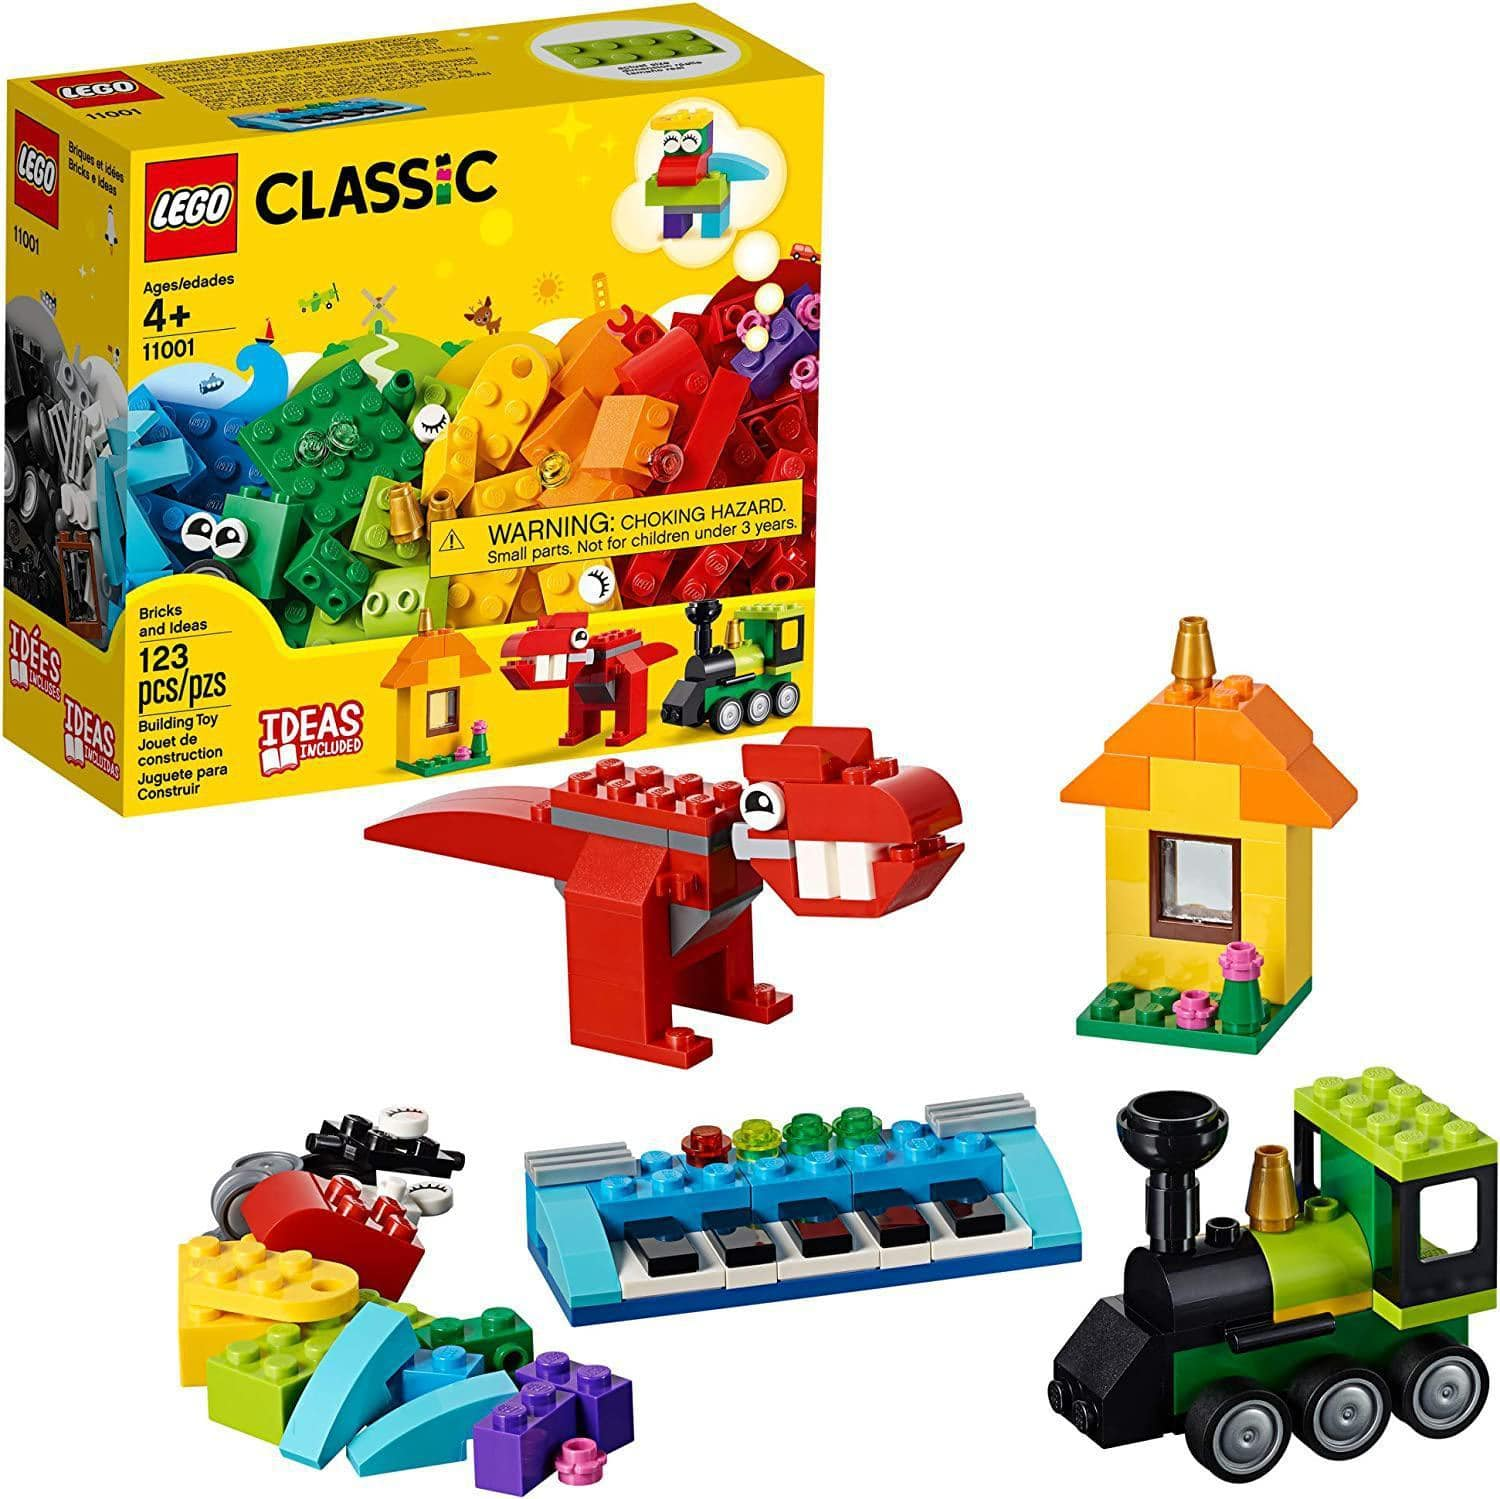 LEGO Classic - Bricks & Ideas Building Kit